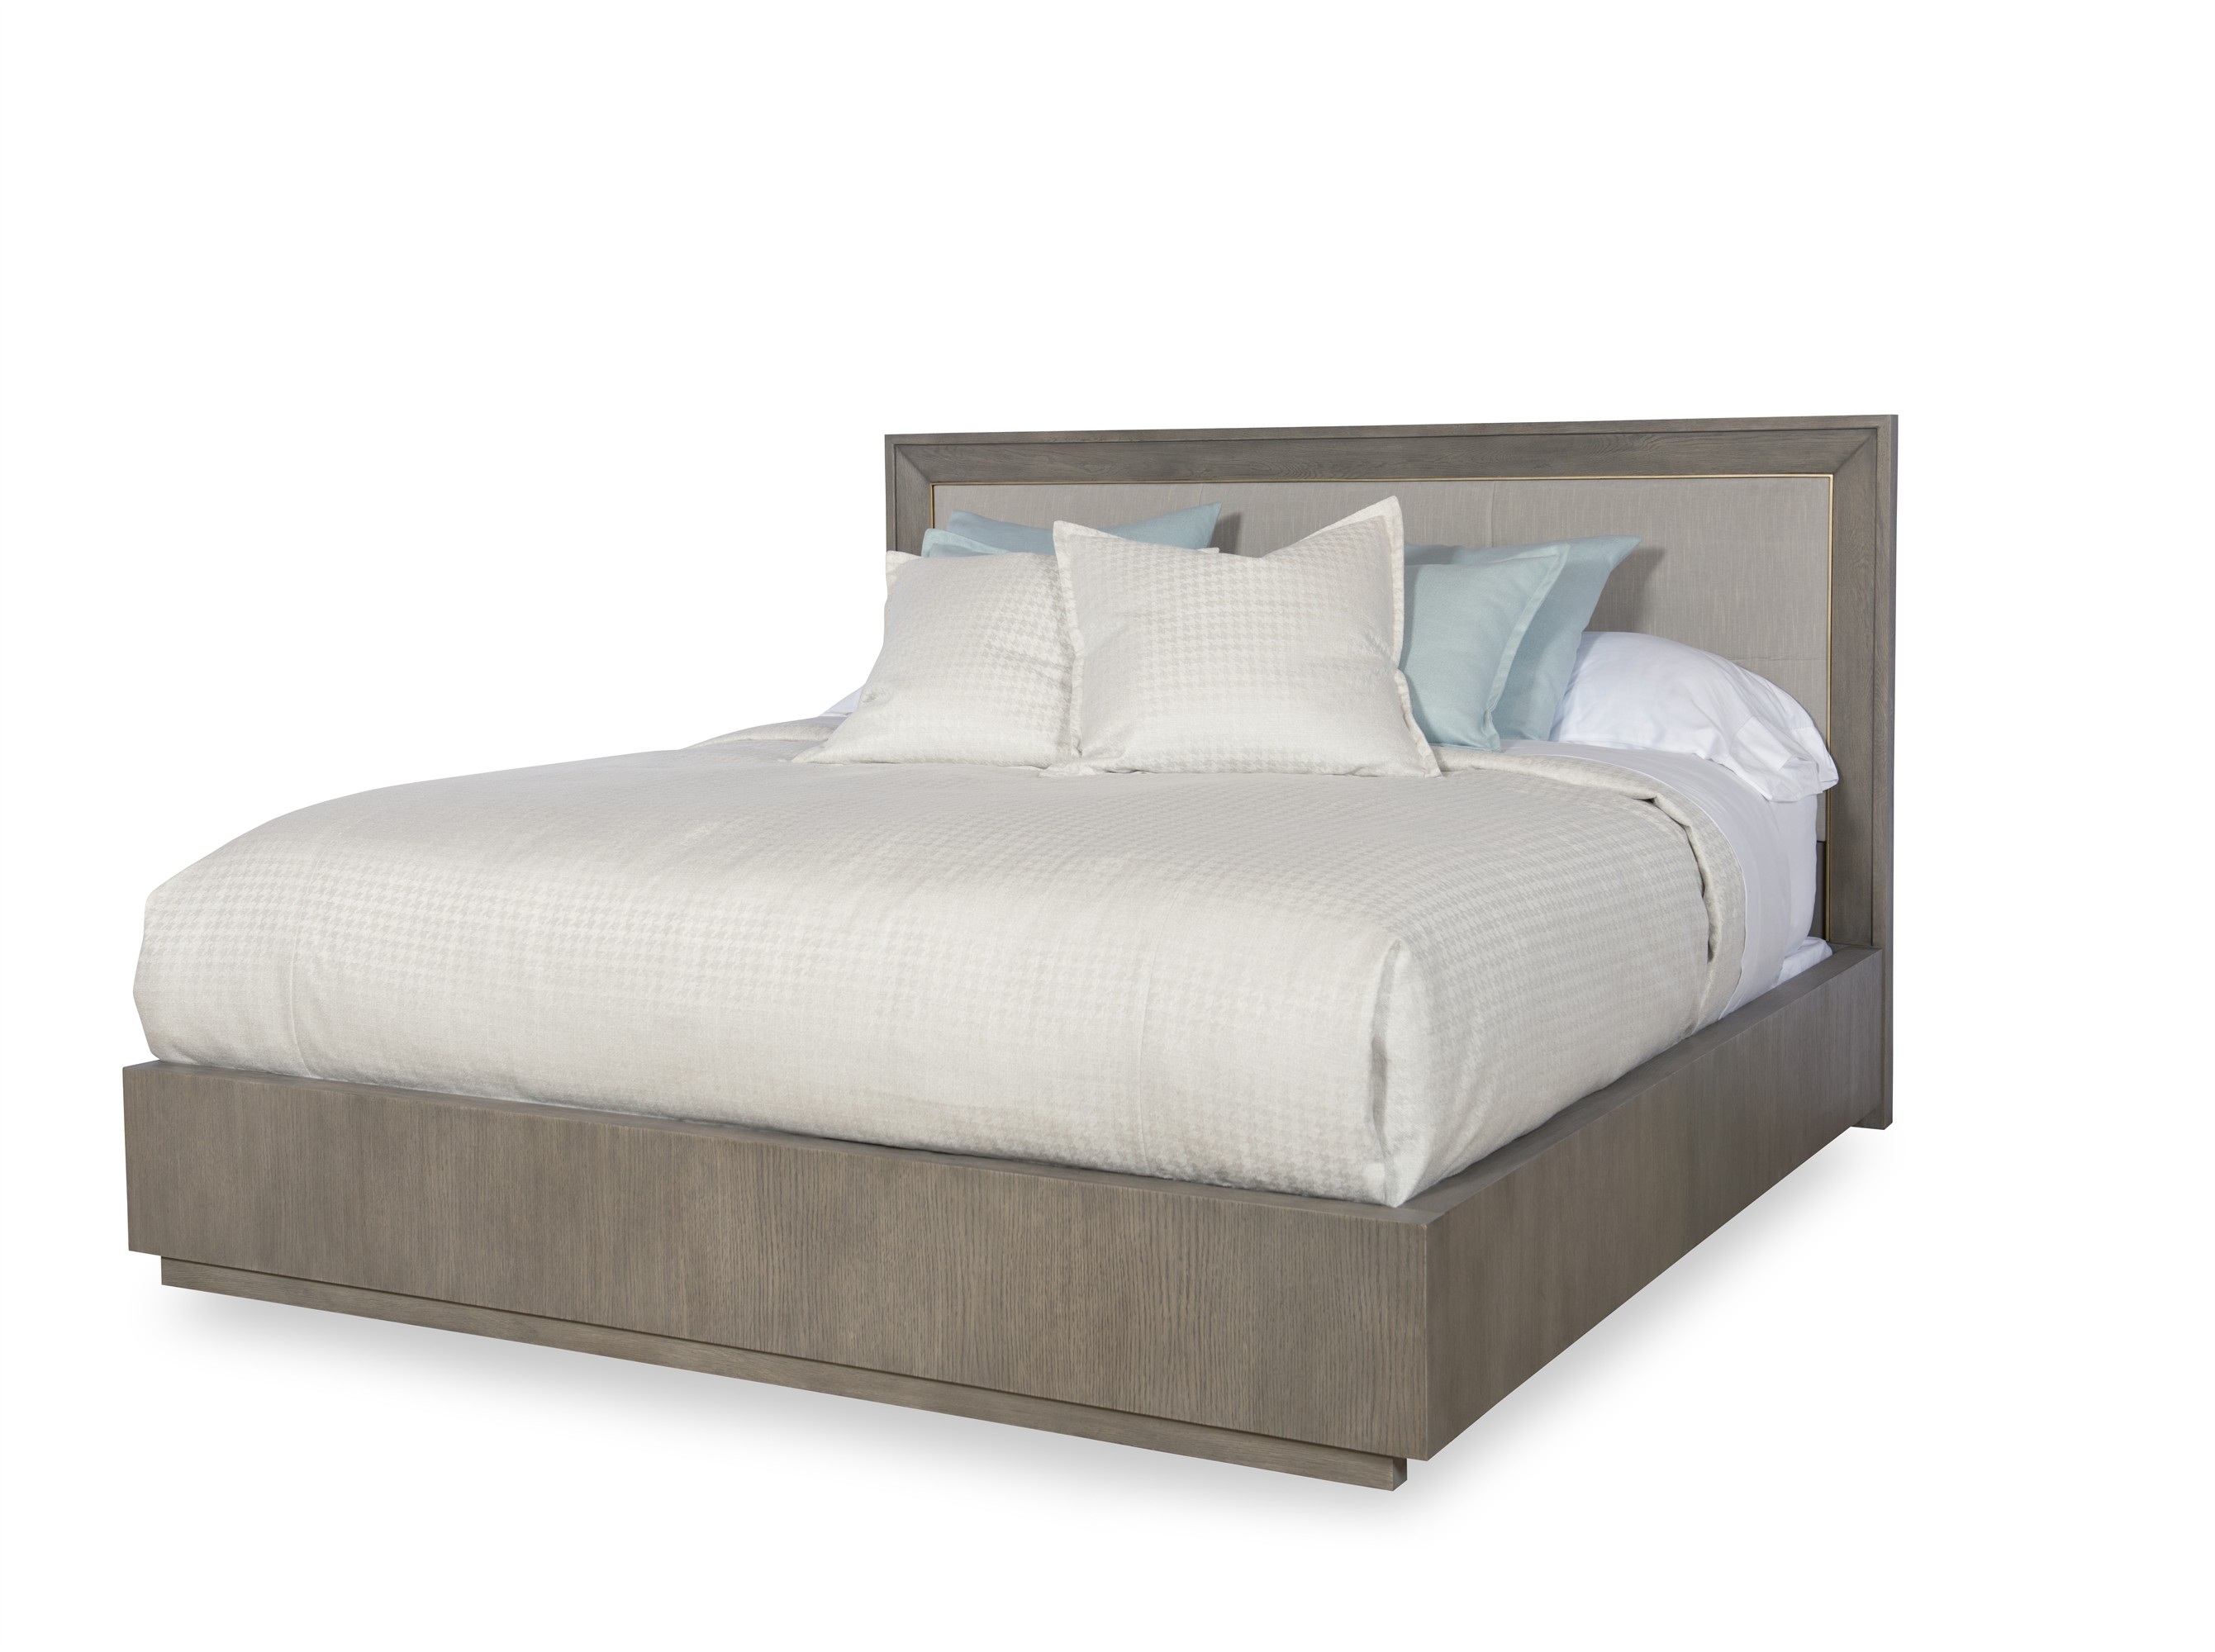 Kendall Bed - King Size 6/6